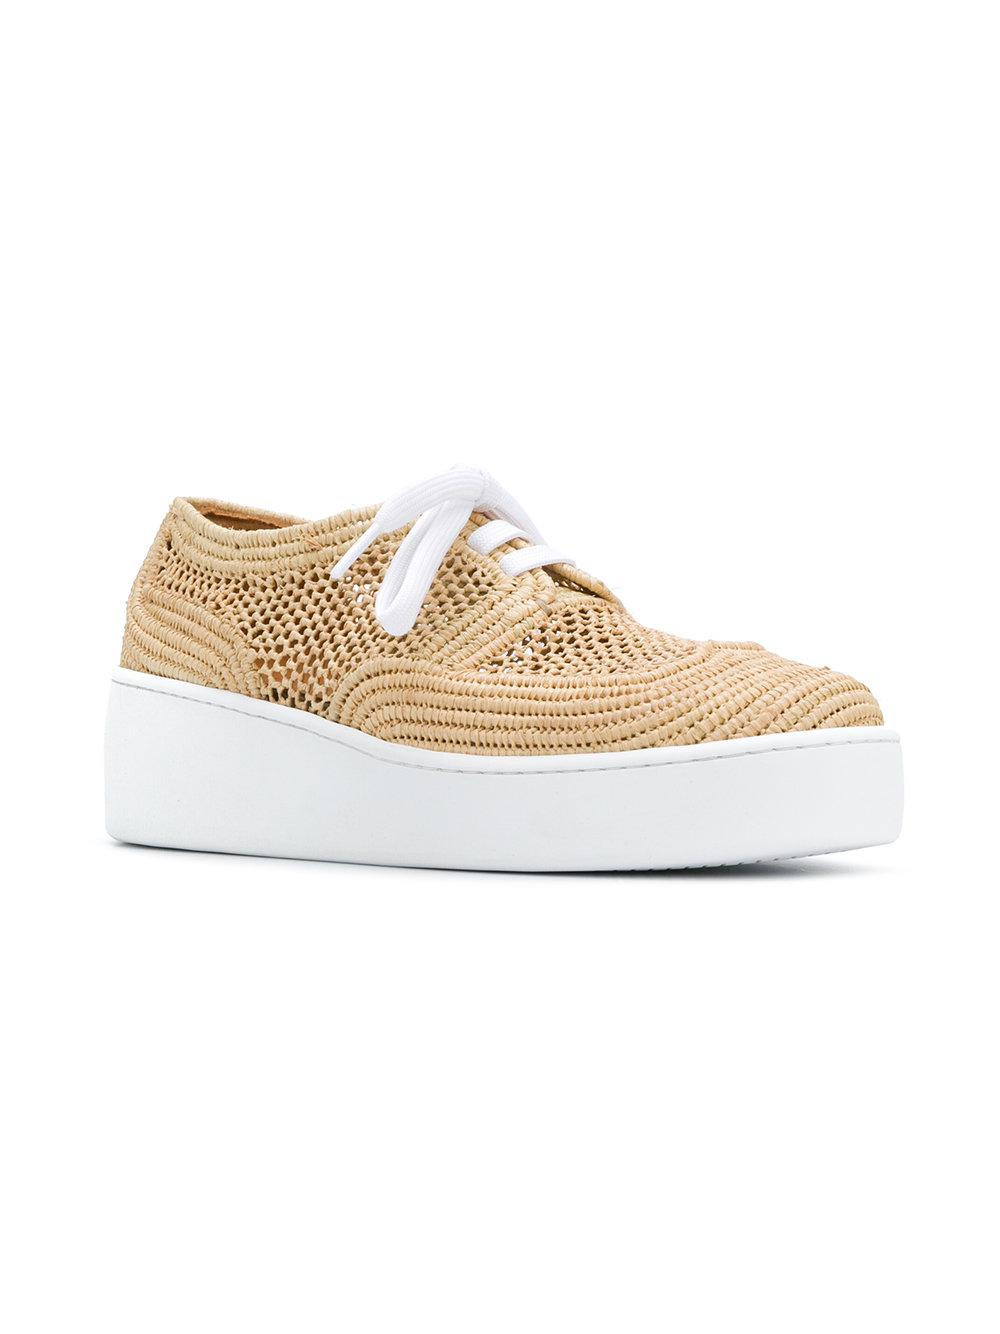 Clergerie Leather Lace Up Sneakers in Natural